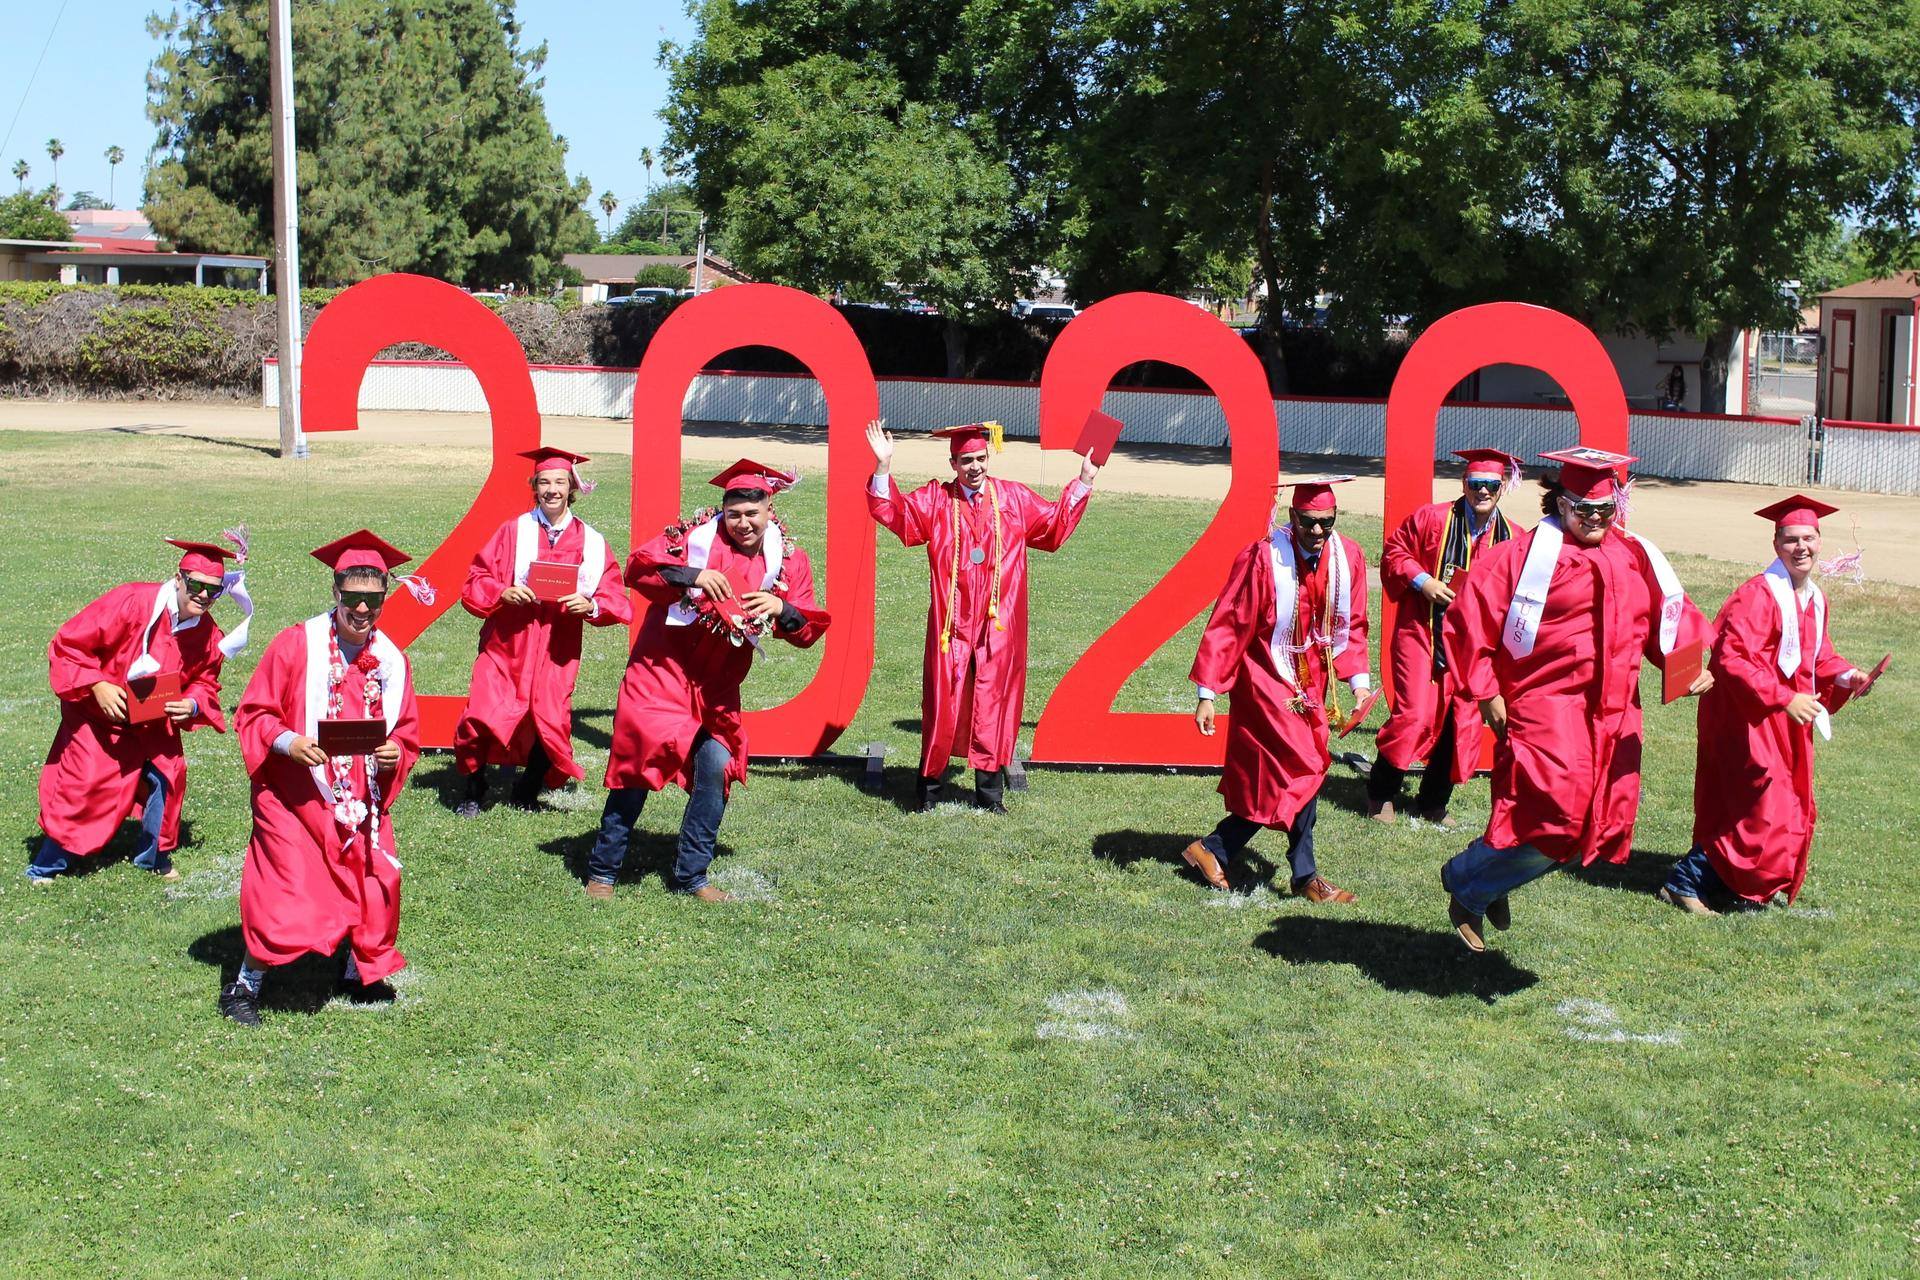 Left to right, Devin Glenn, Roman Diaz, Ryan Basler, Damian Rodriguez, Ali Misleh, Amit Grewal, Westley Roberts, Daniel Nieves, and Tristan Holt turning their tassels